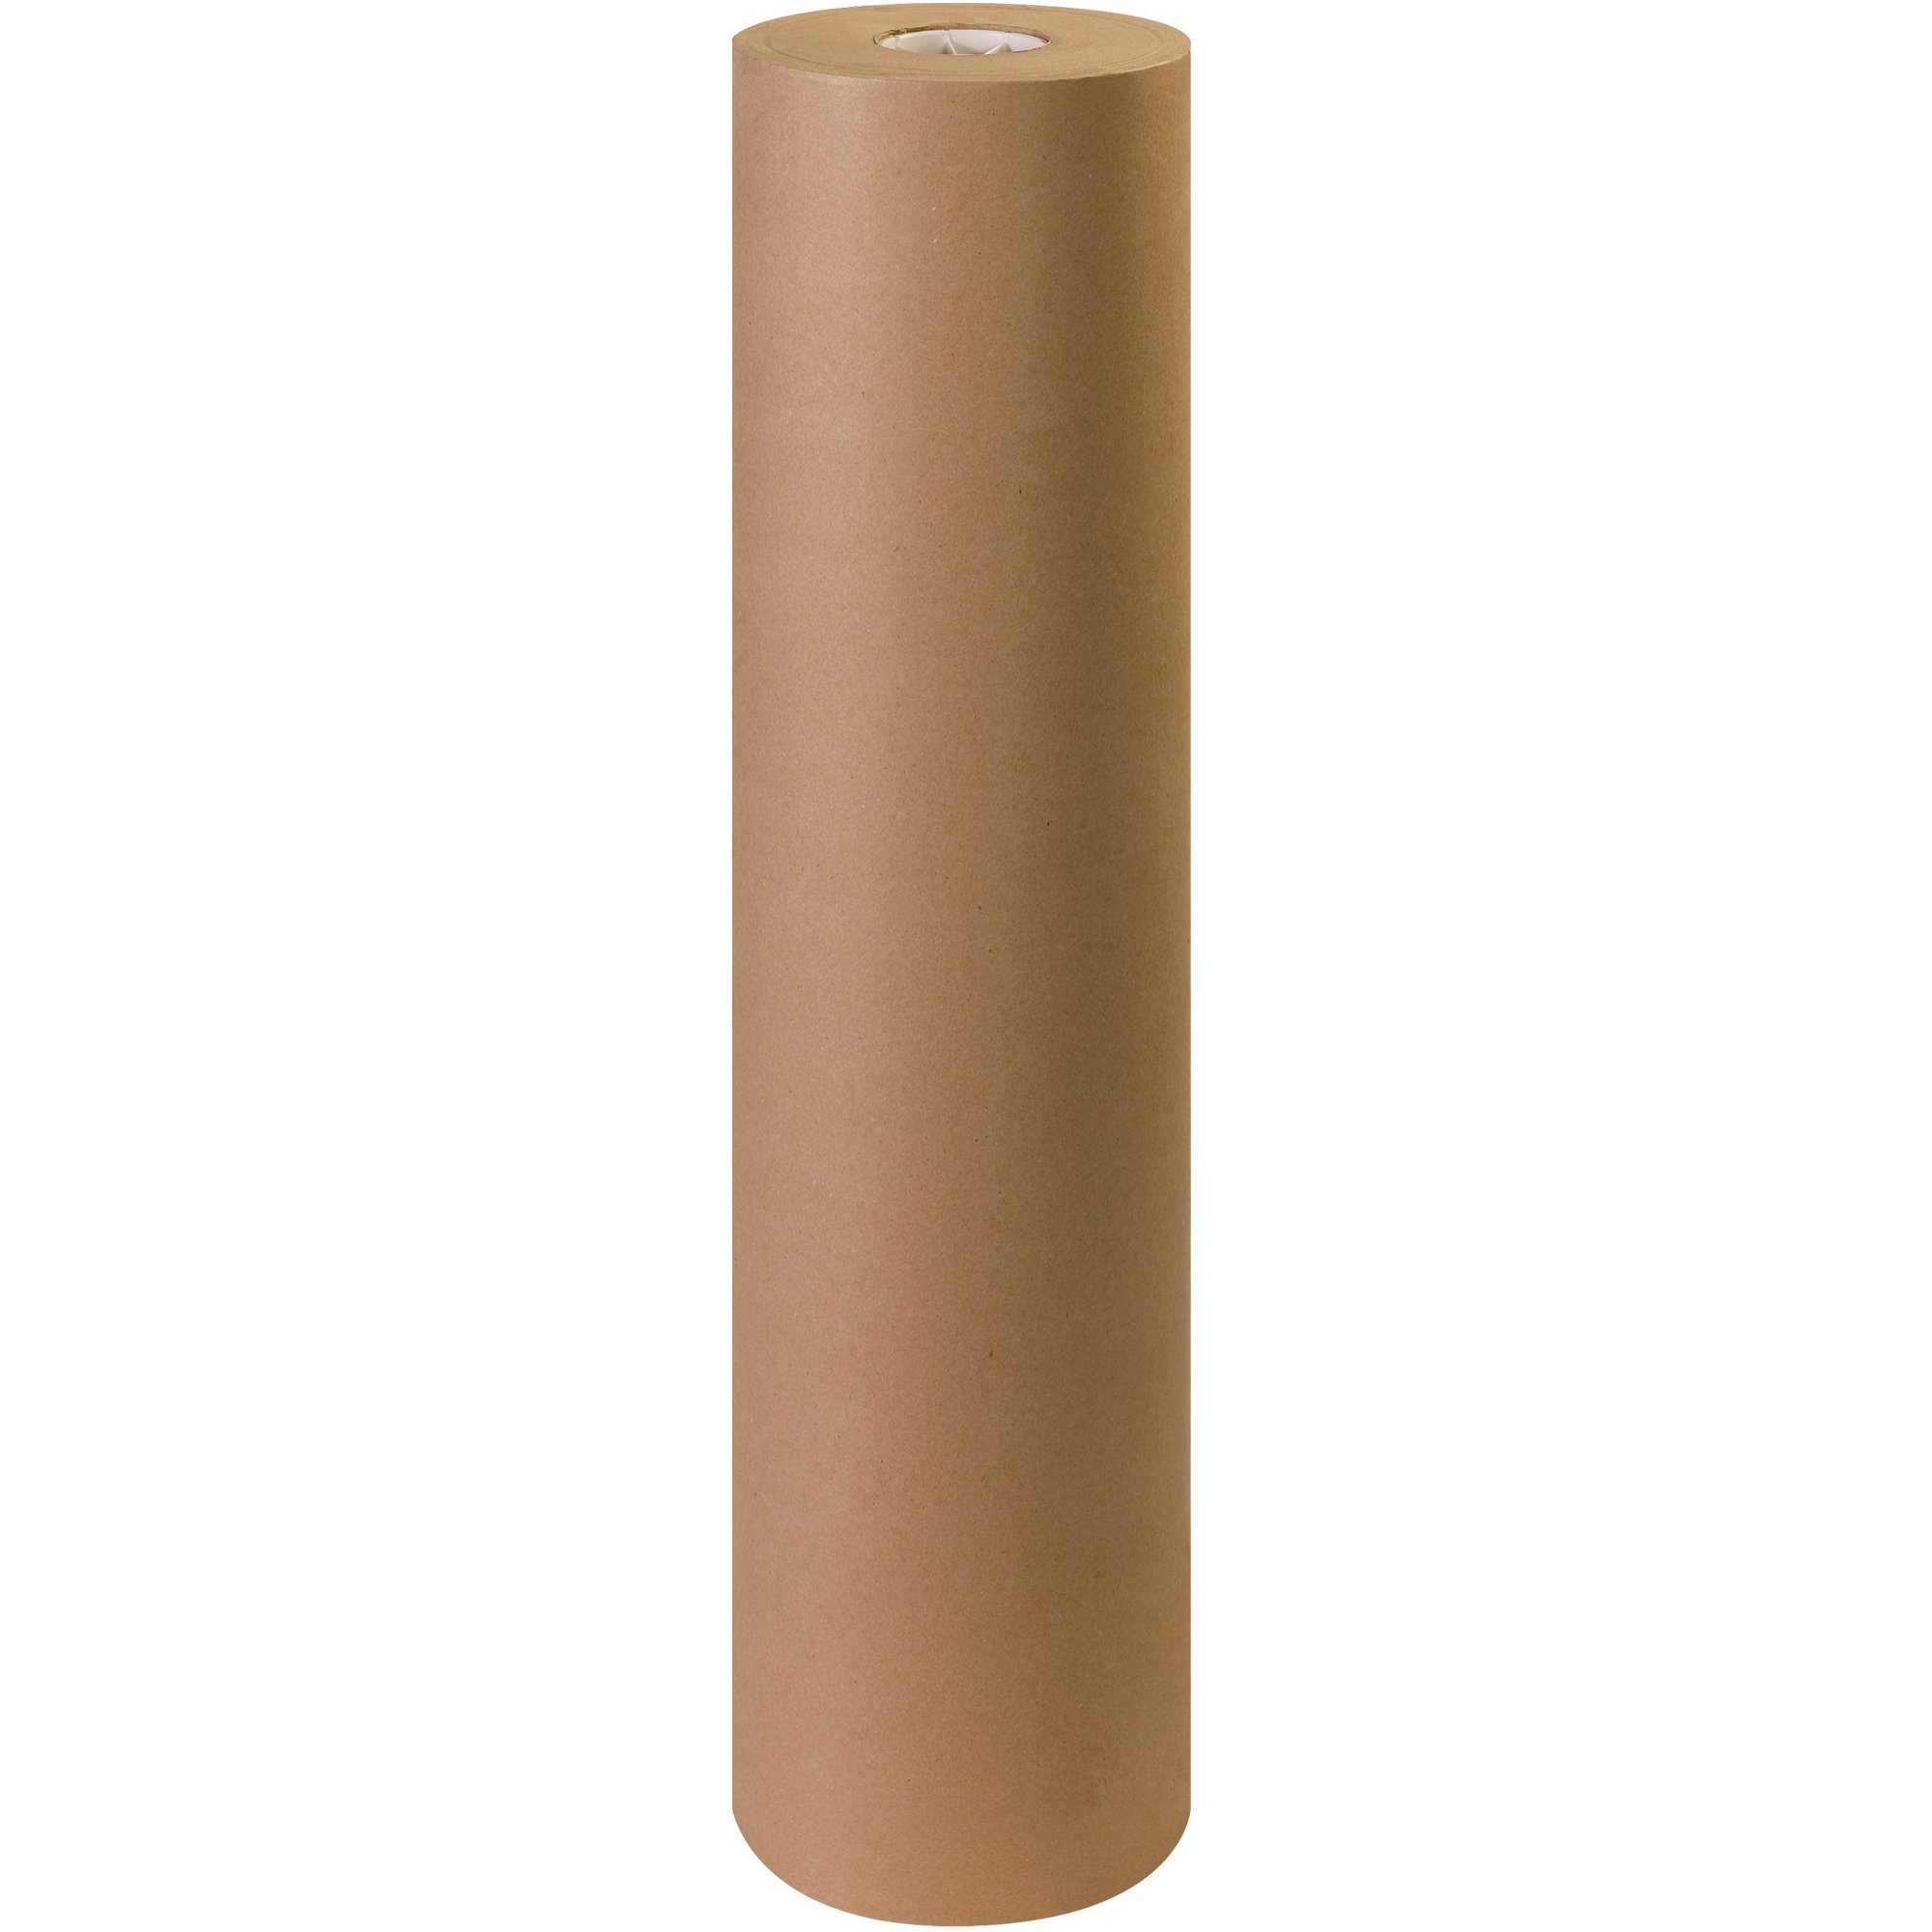 Boxes Fast Kraft Paper Roll, 60#, 36'' x 600', Kraft, (Pack of 1 Roll) by Boxes Fast